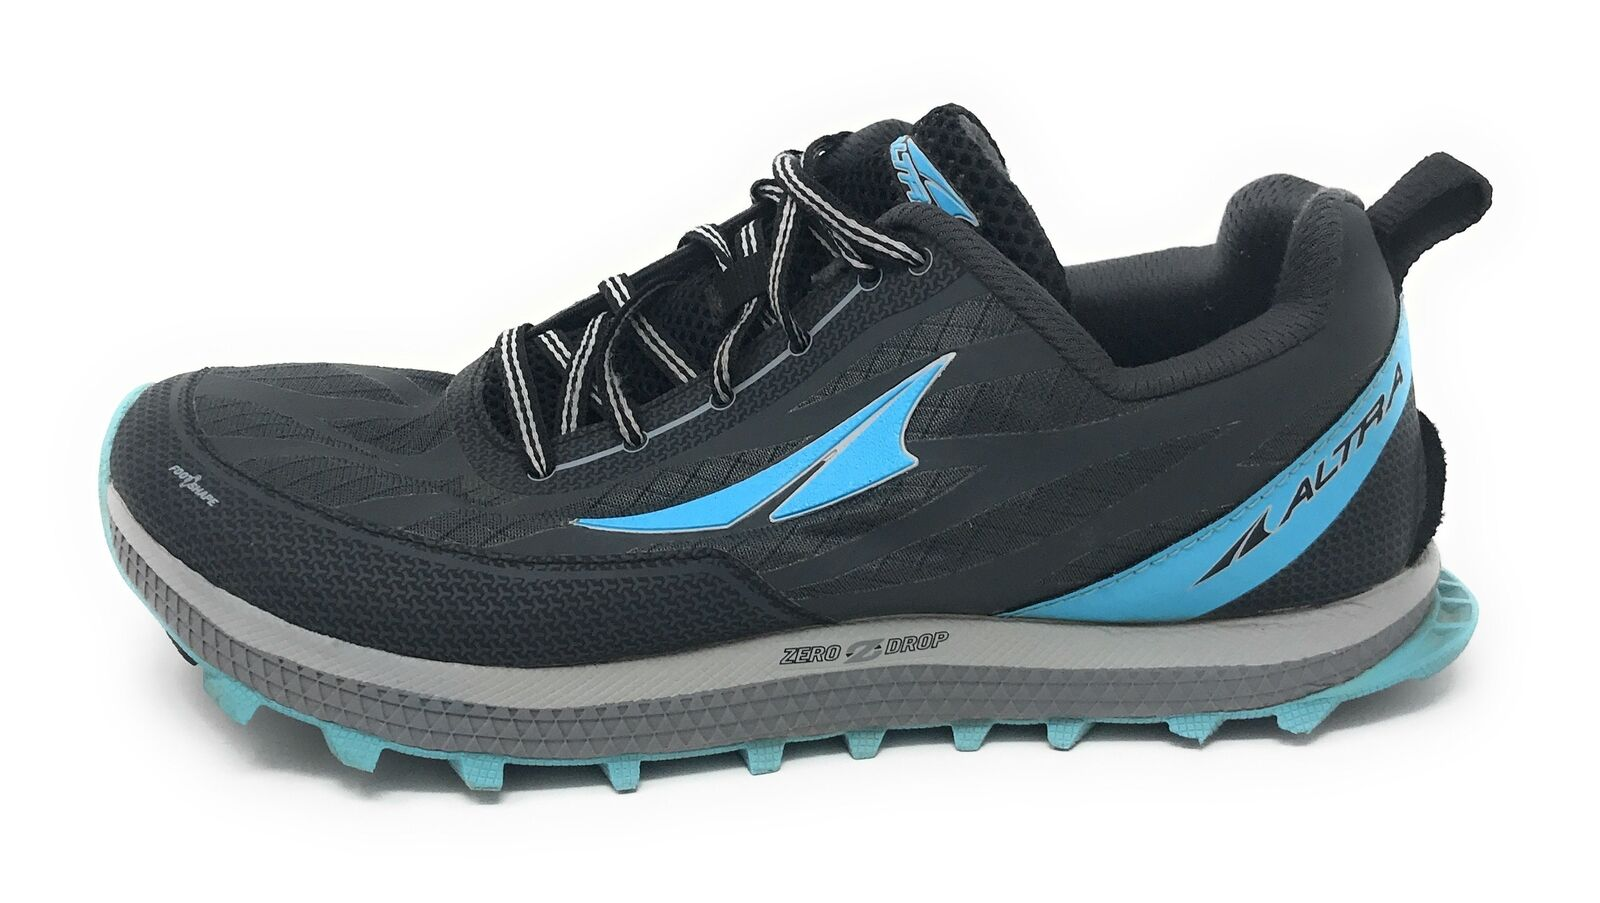 Altra Women's Superior 3 Running shoes, Charcoal blueee, 9 M Used